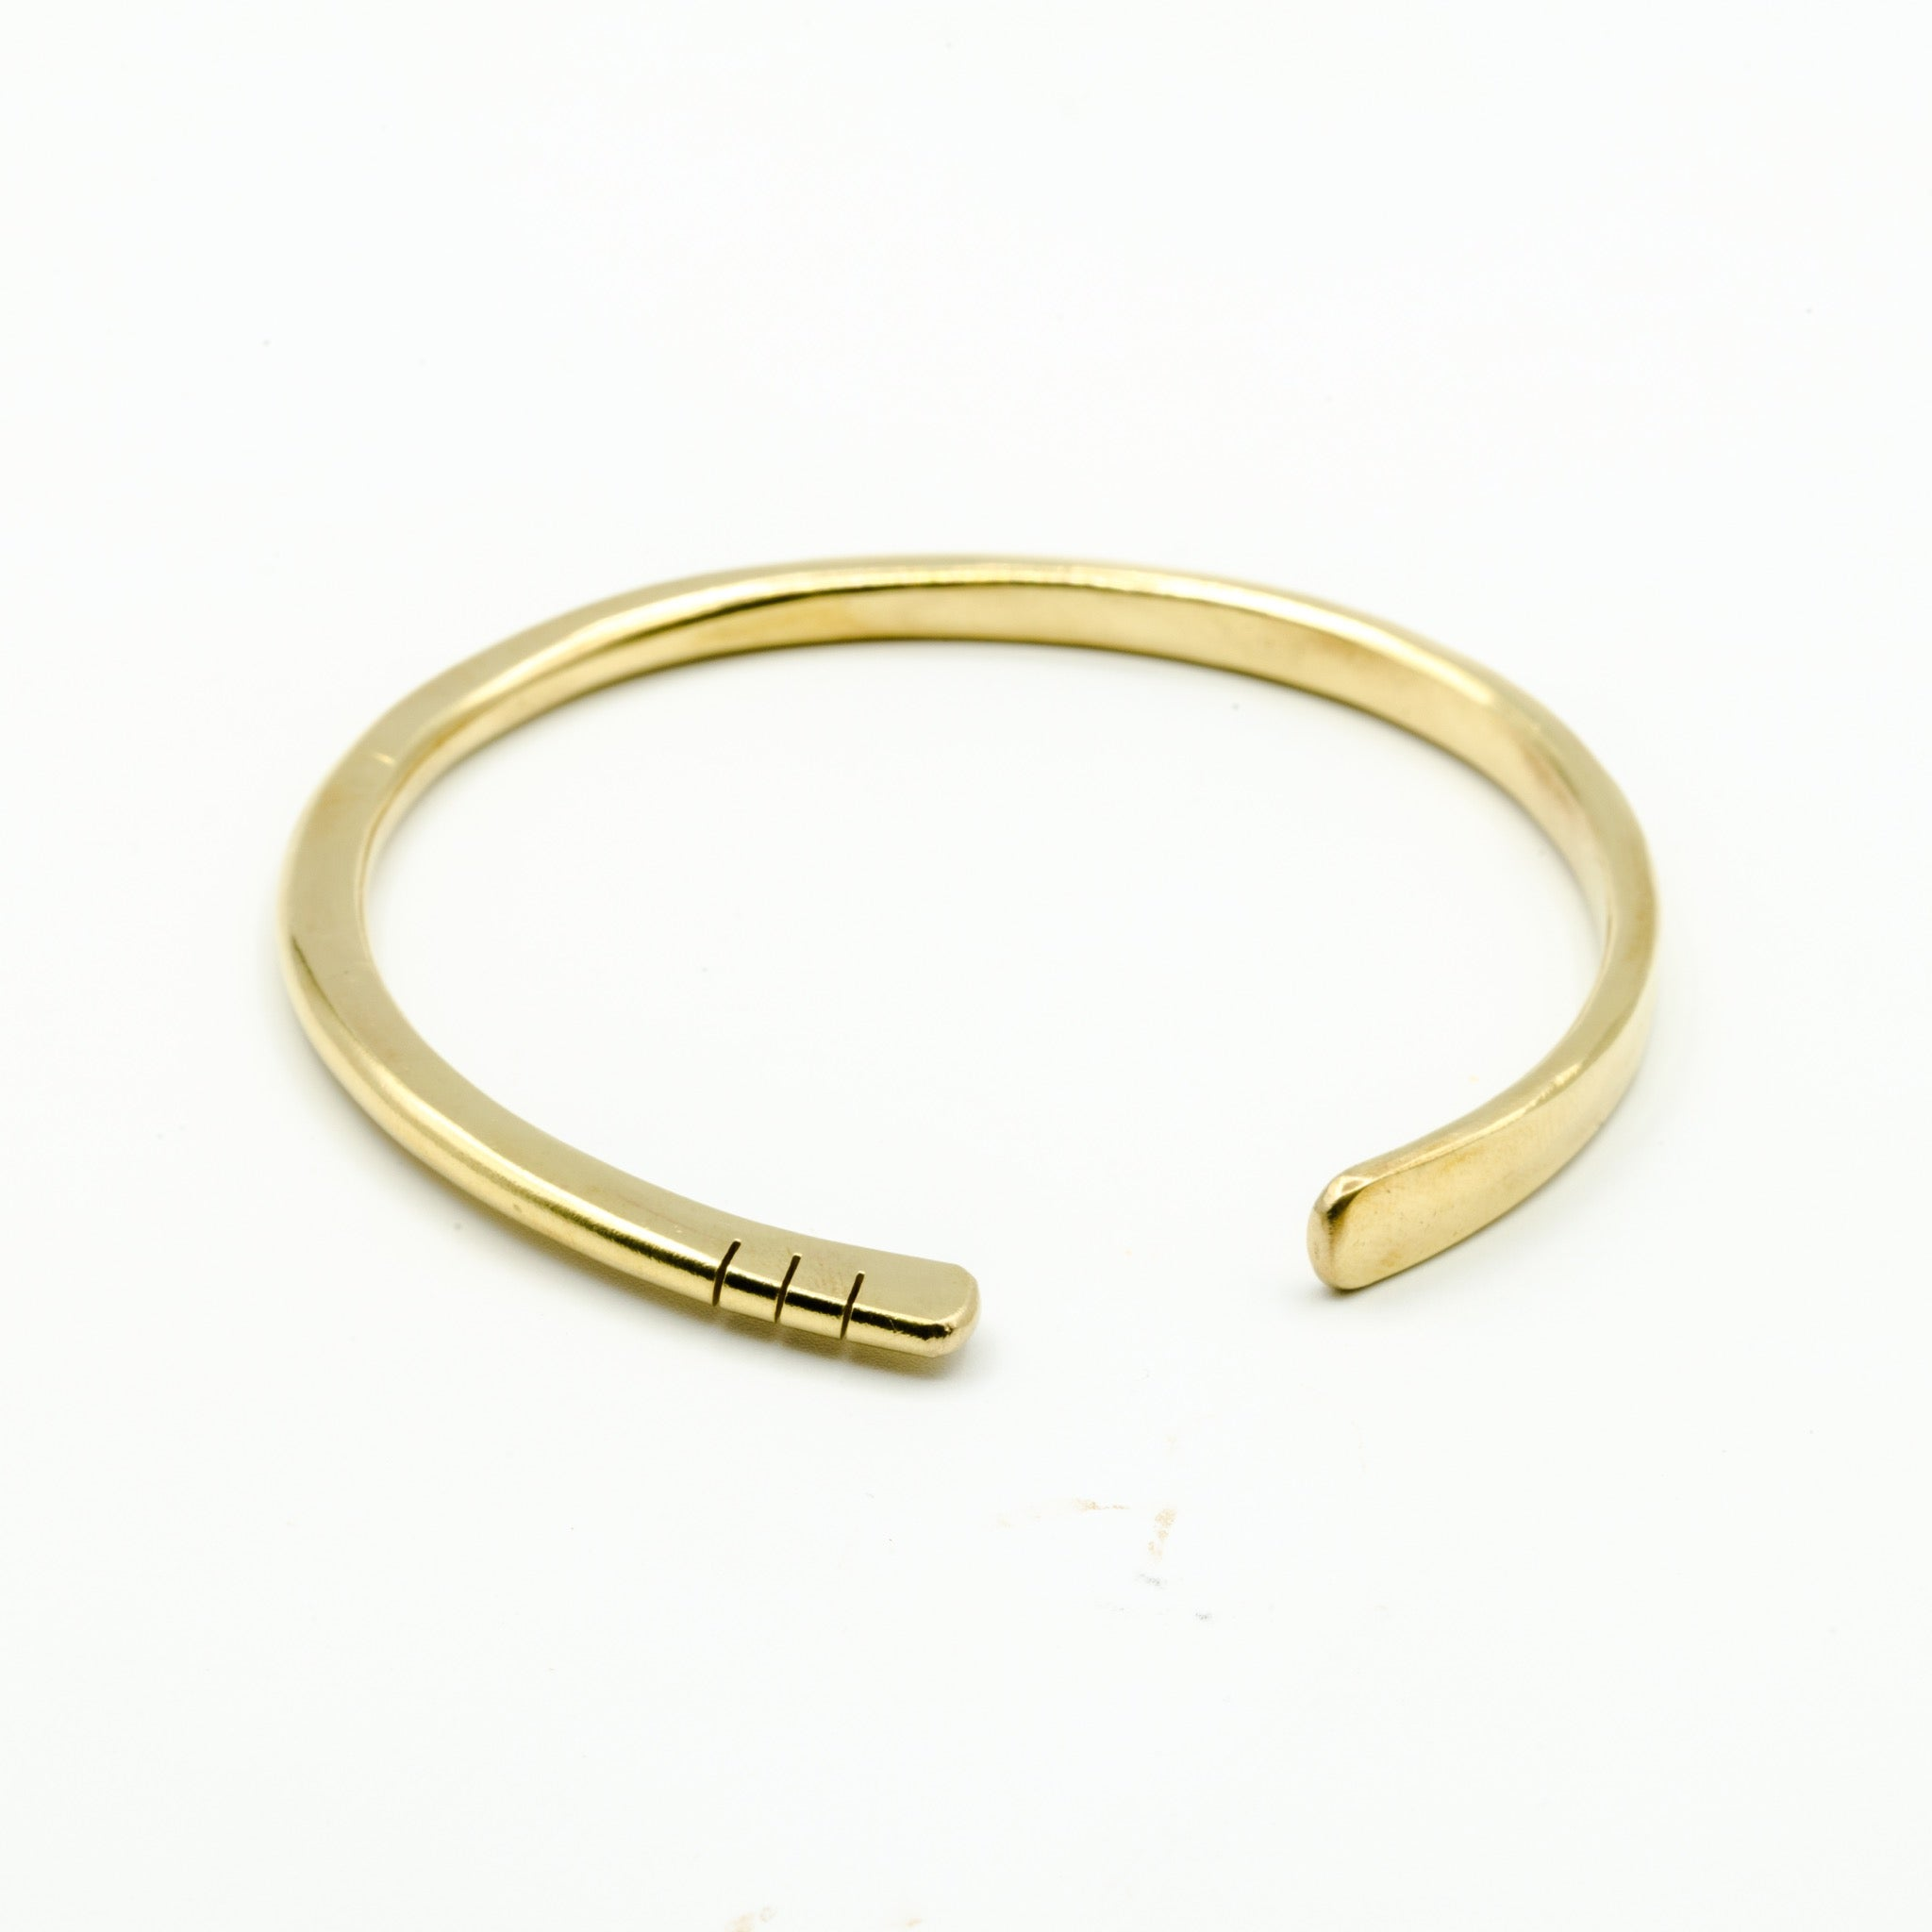 hand forged brass bangle with three cut notches on white background